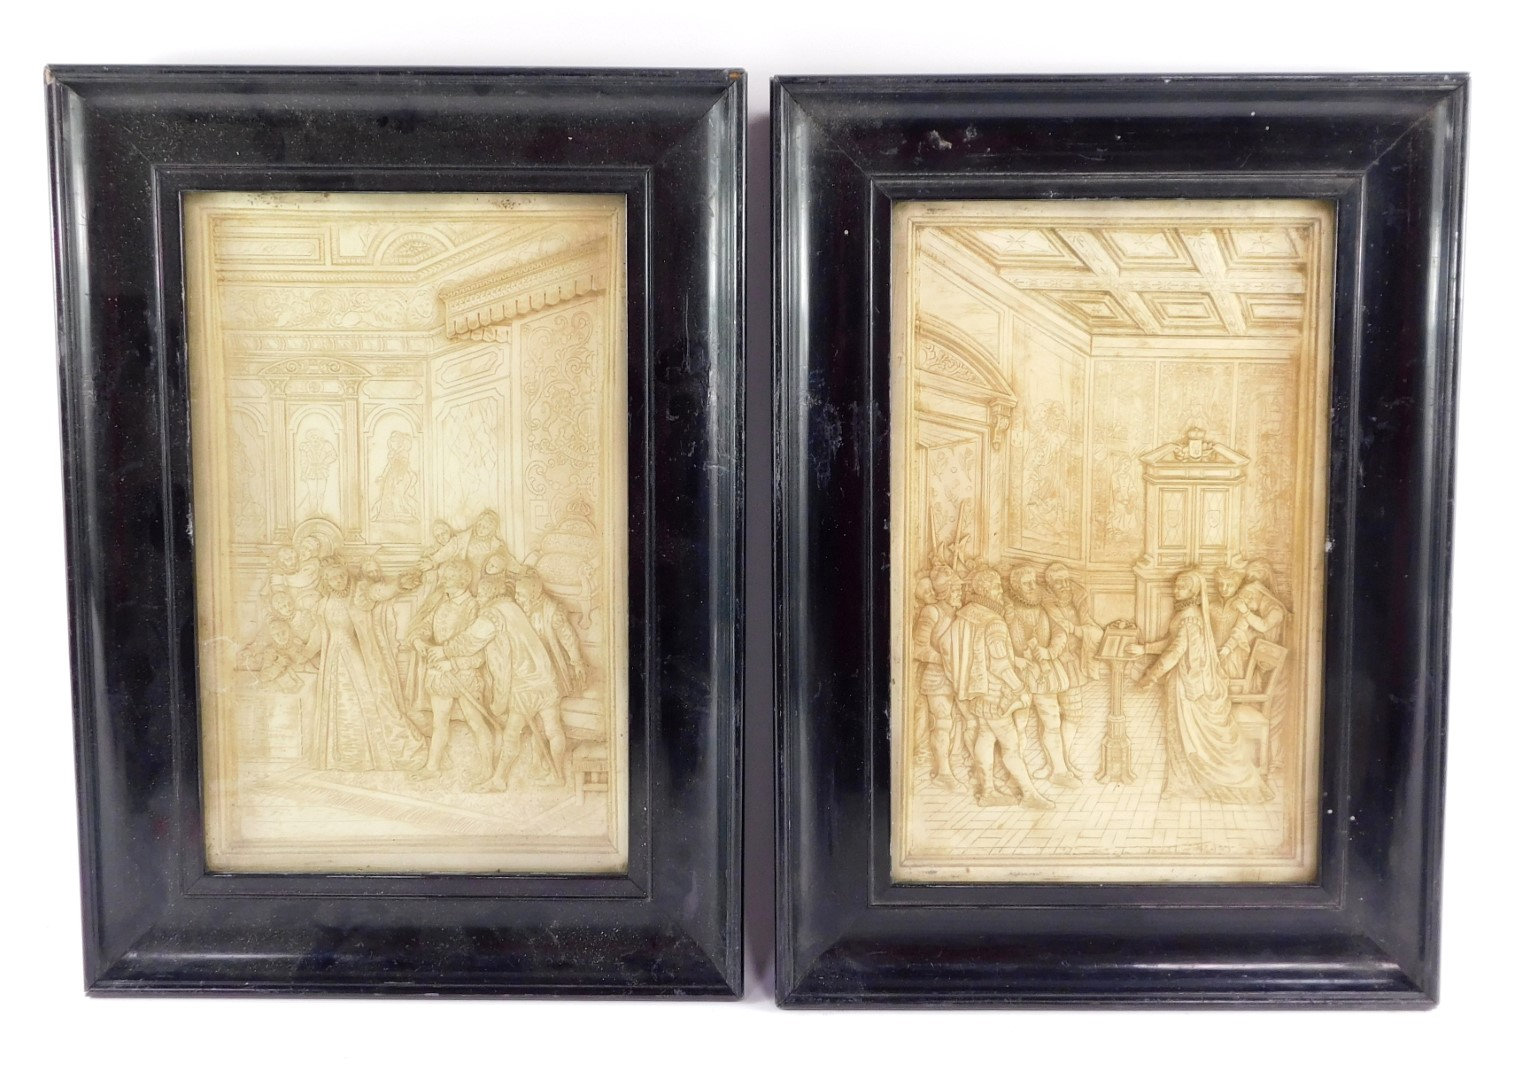 A pair of late 19thC plaster pictures, scenes depicting Mary Queen of Scots, relief moulded in